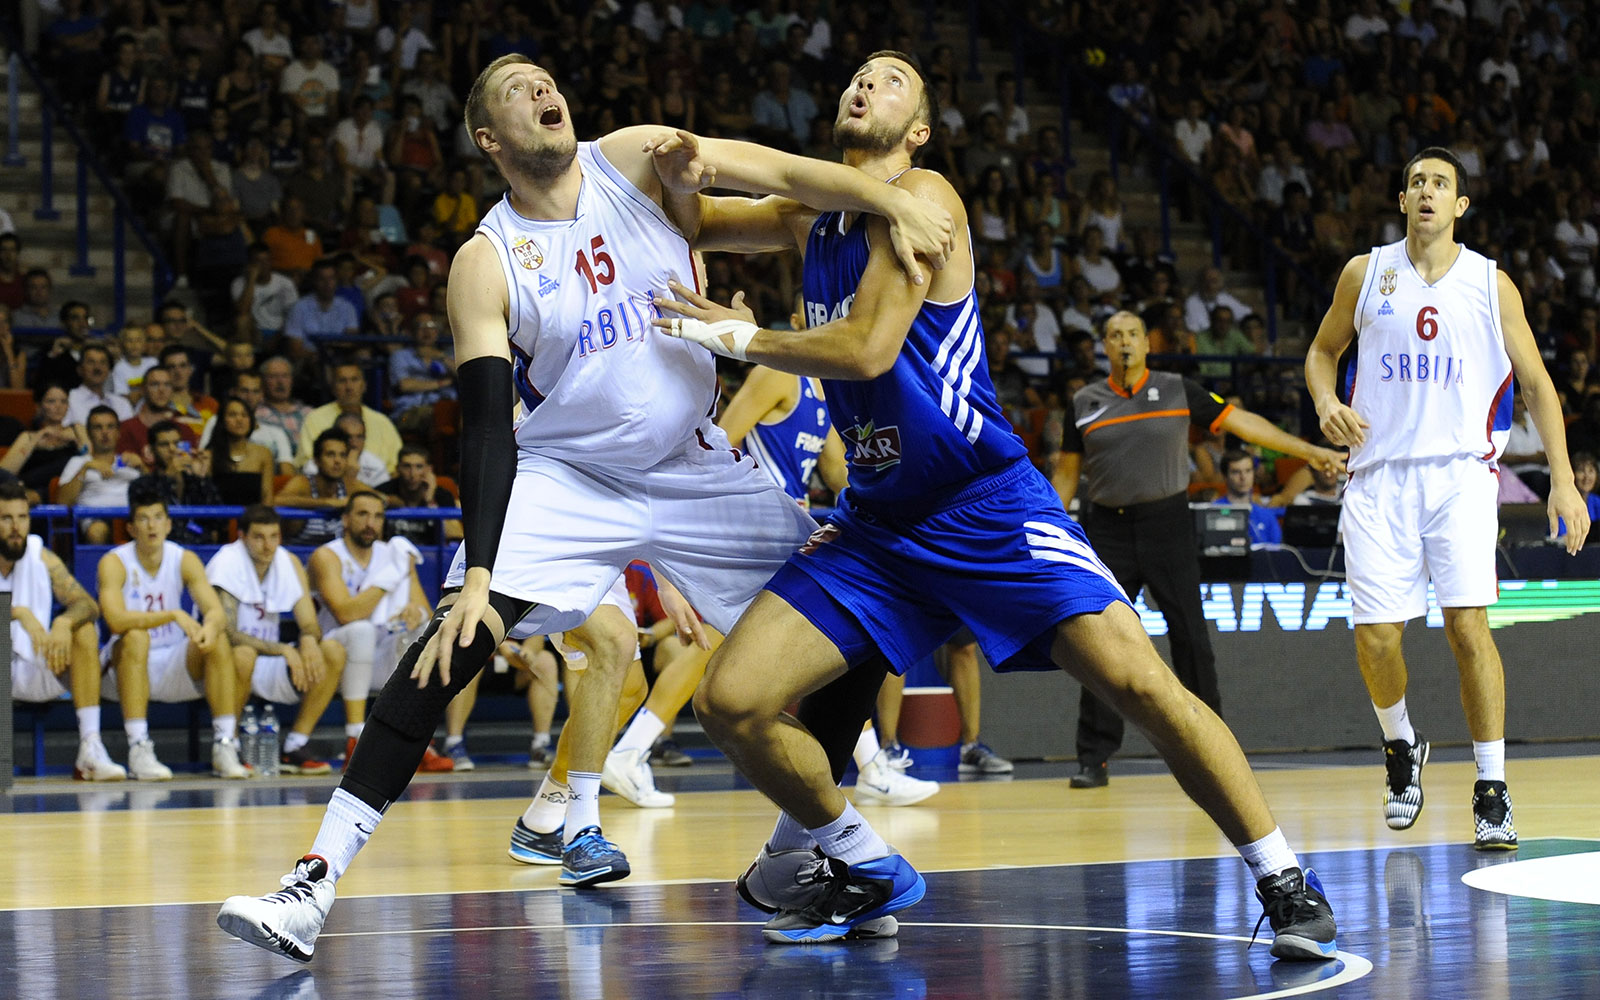 Basketball France Serbie en direct live streaming